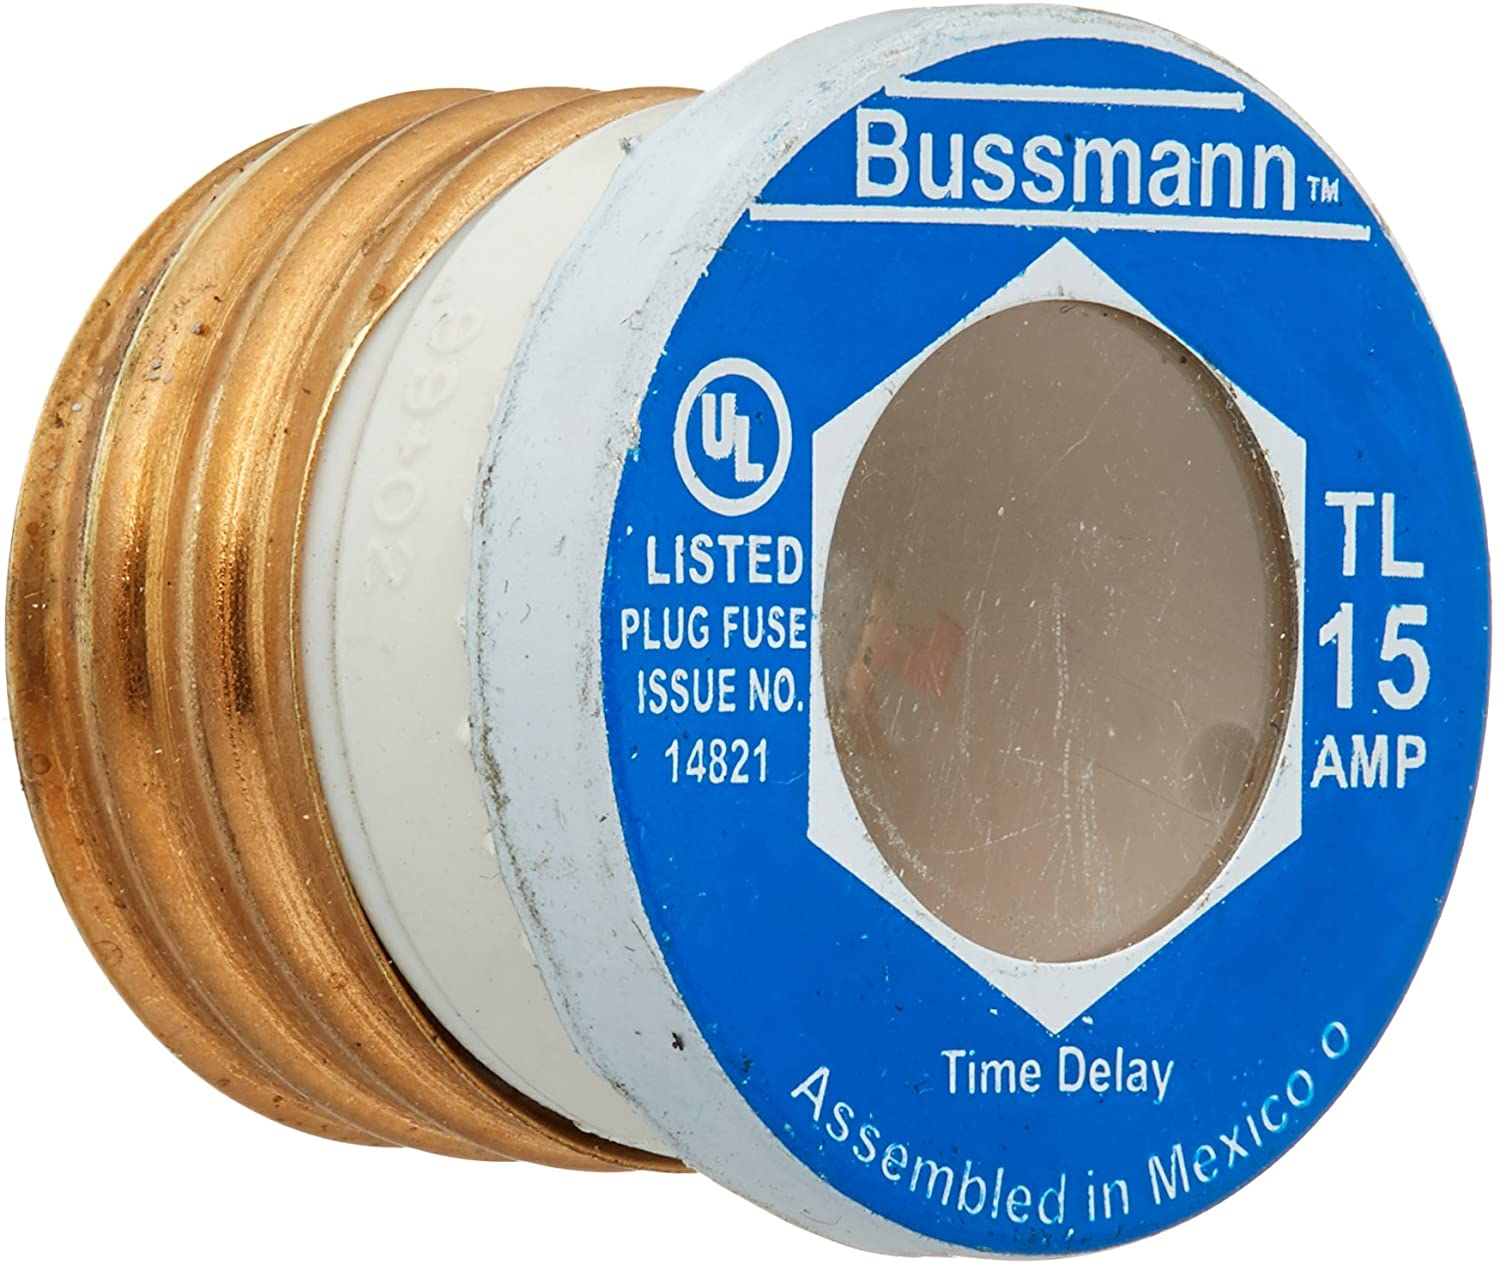 Bussmann BP/TL-15 15 Amp Time Delay, Loaded Link Edison Base Plug Fuse, 125V UL Listed Carded, 3-Pack